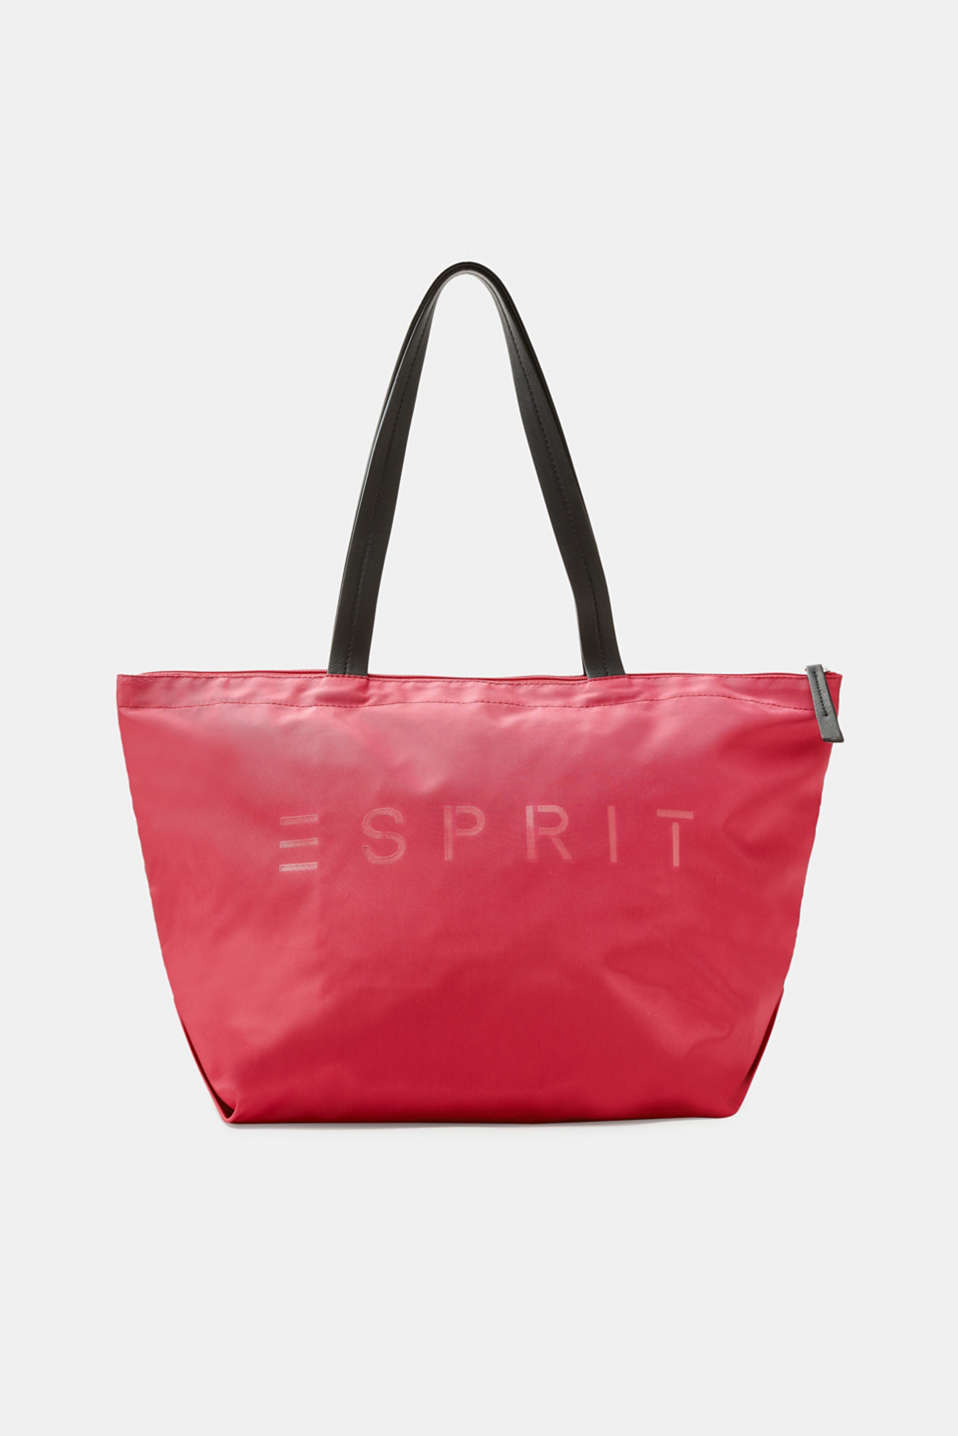 Esprit - Shopper bag with a logo print, in nylon